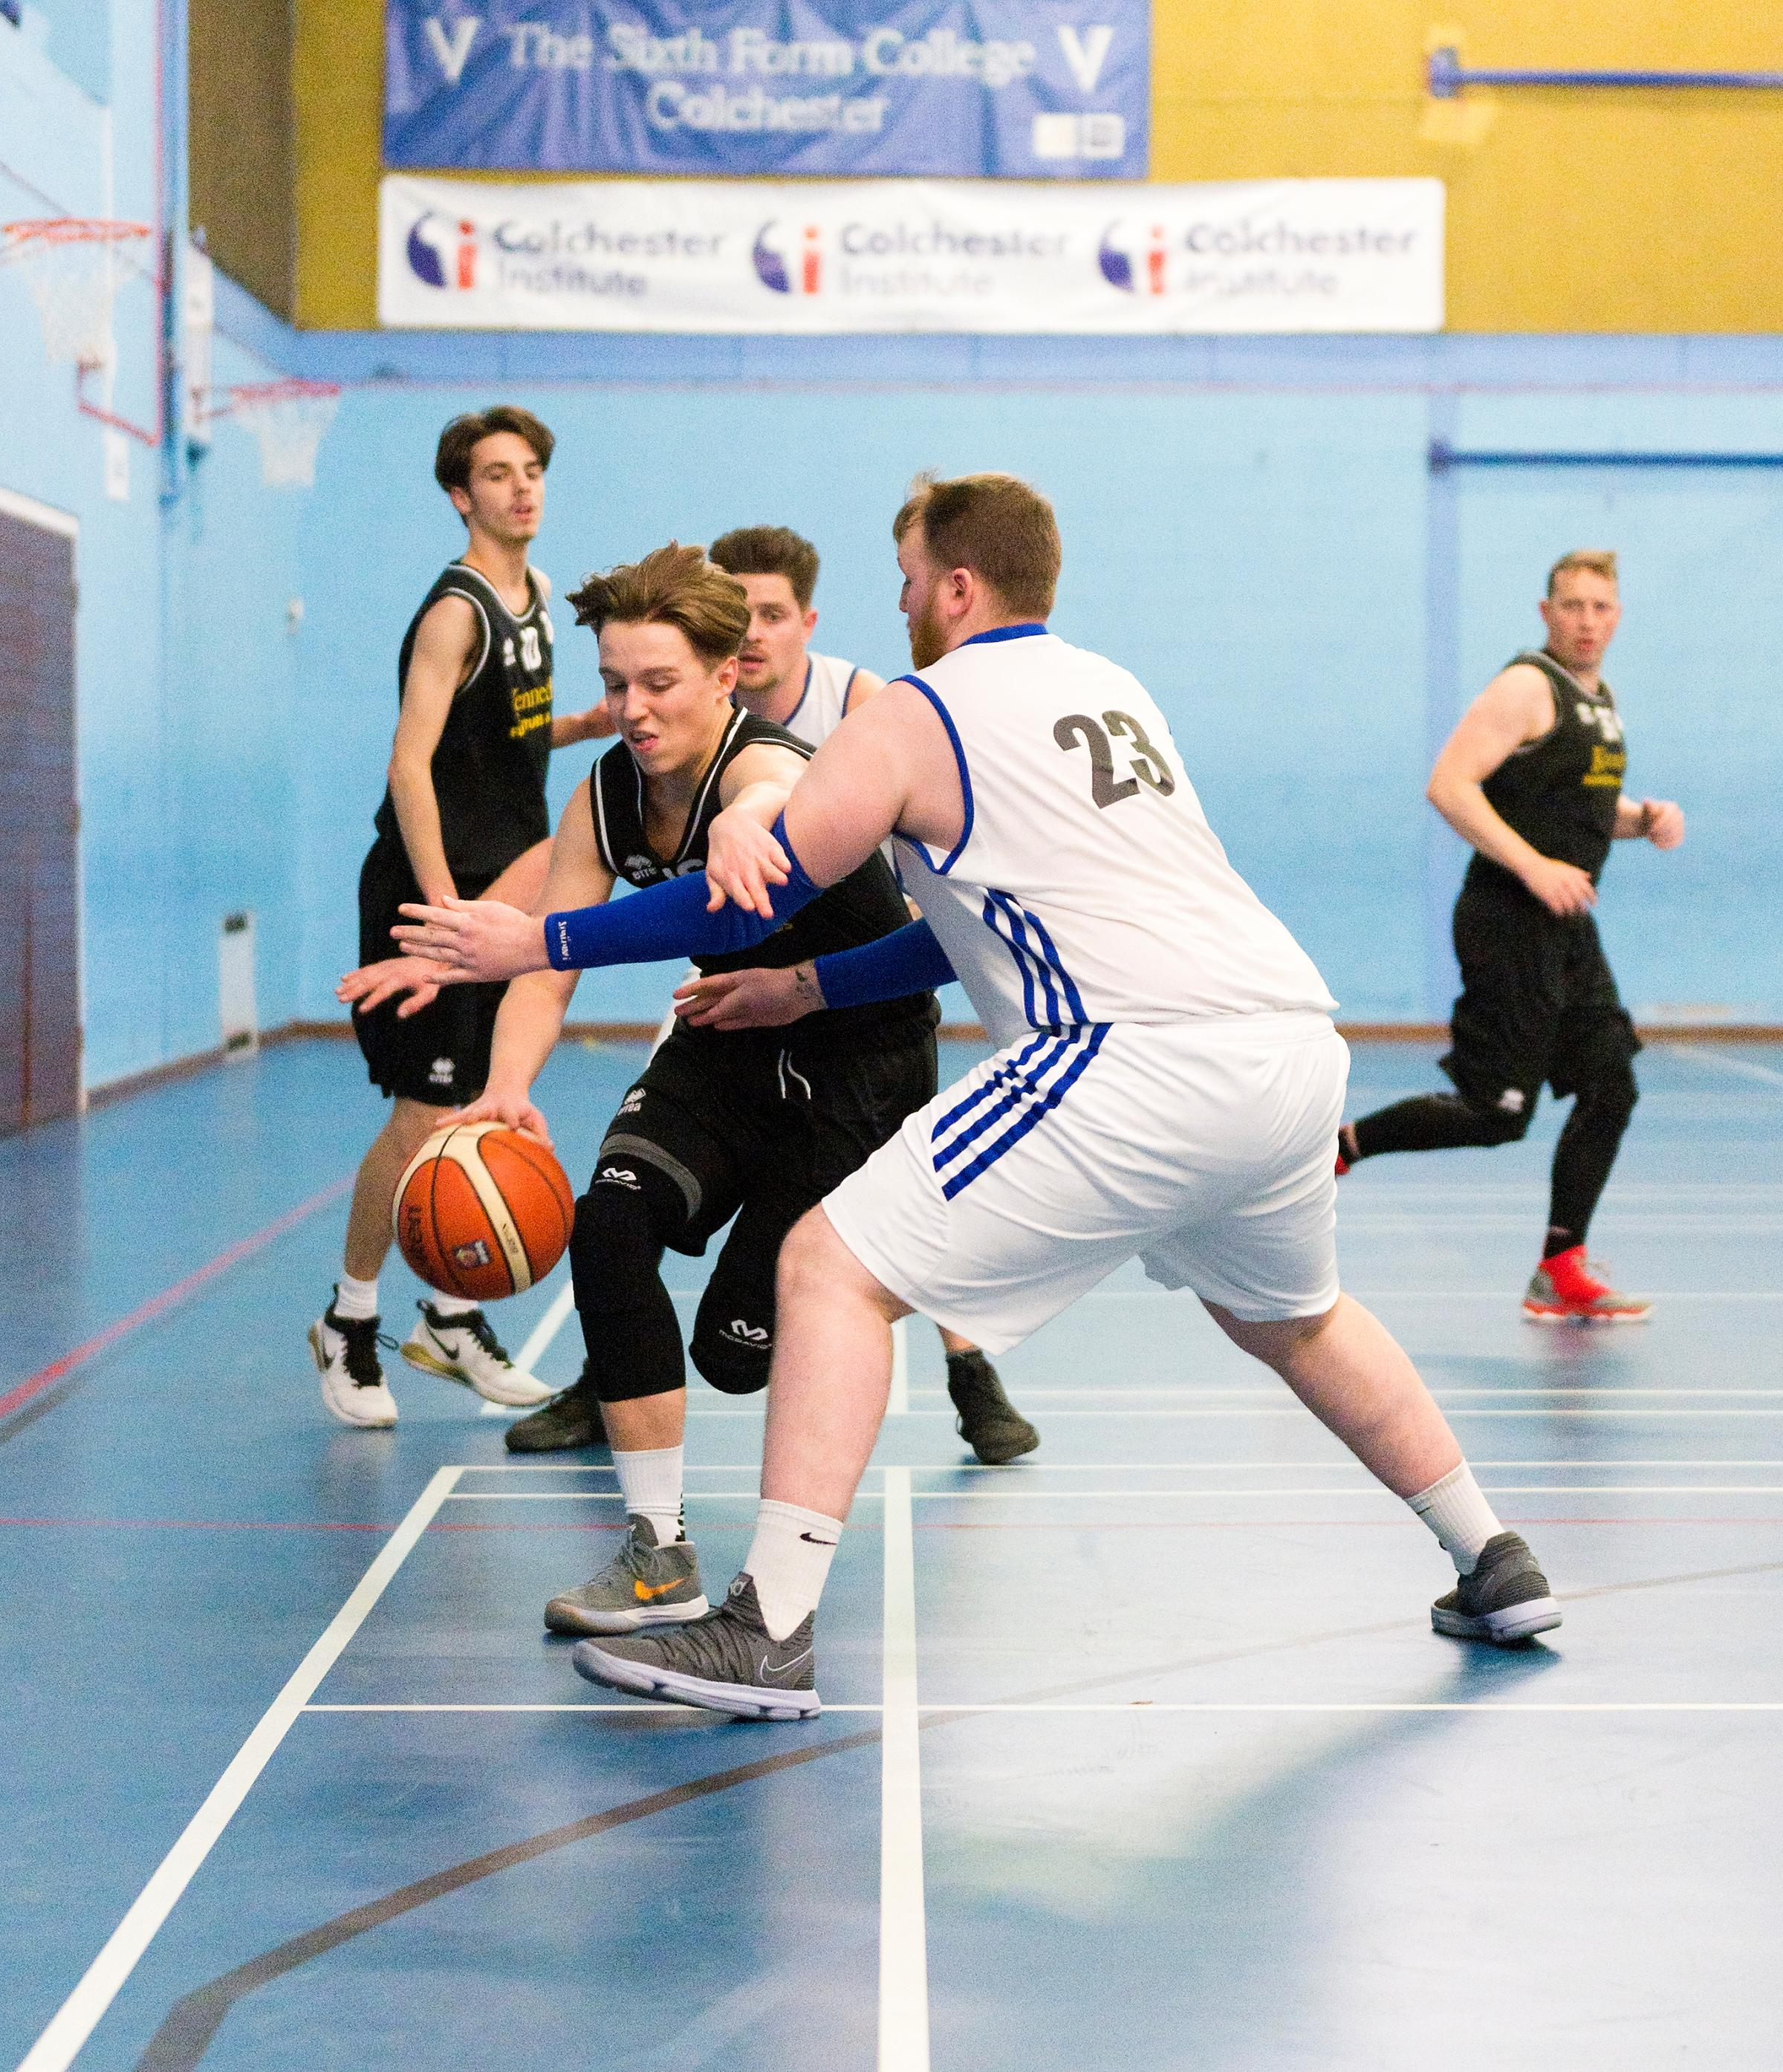 High energy - the Cannons (in black) give their all and are rewarded with a 70-59 success against the Colchester Bulls, in their latest Suffolk Senior League contest Pictures: Hannah Fountain (hrfphotography.co.uk)